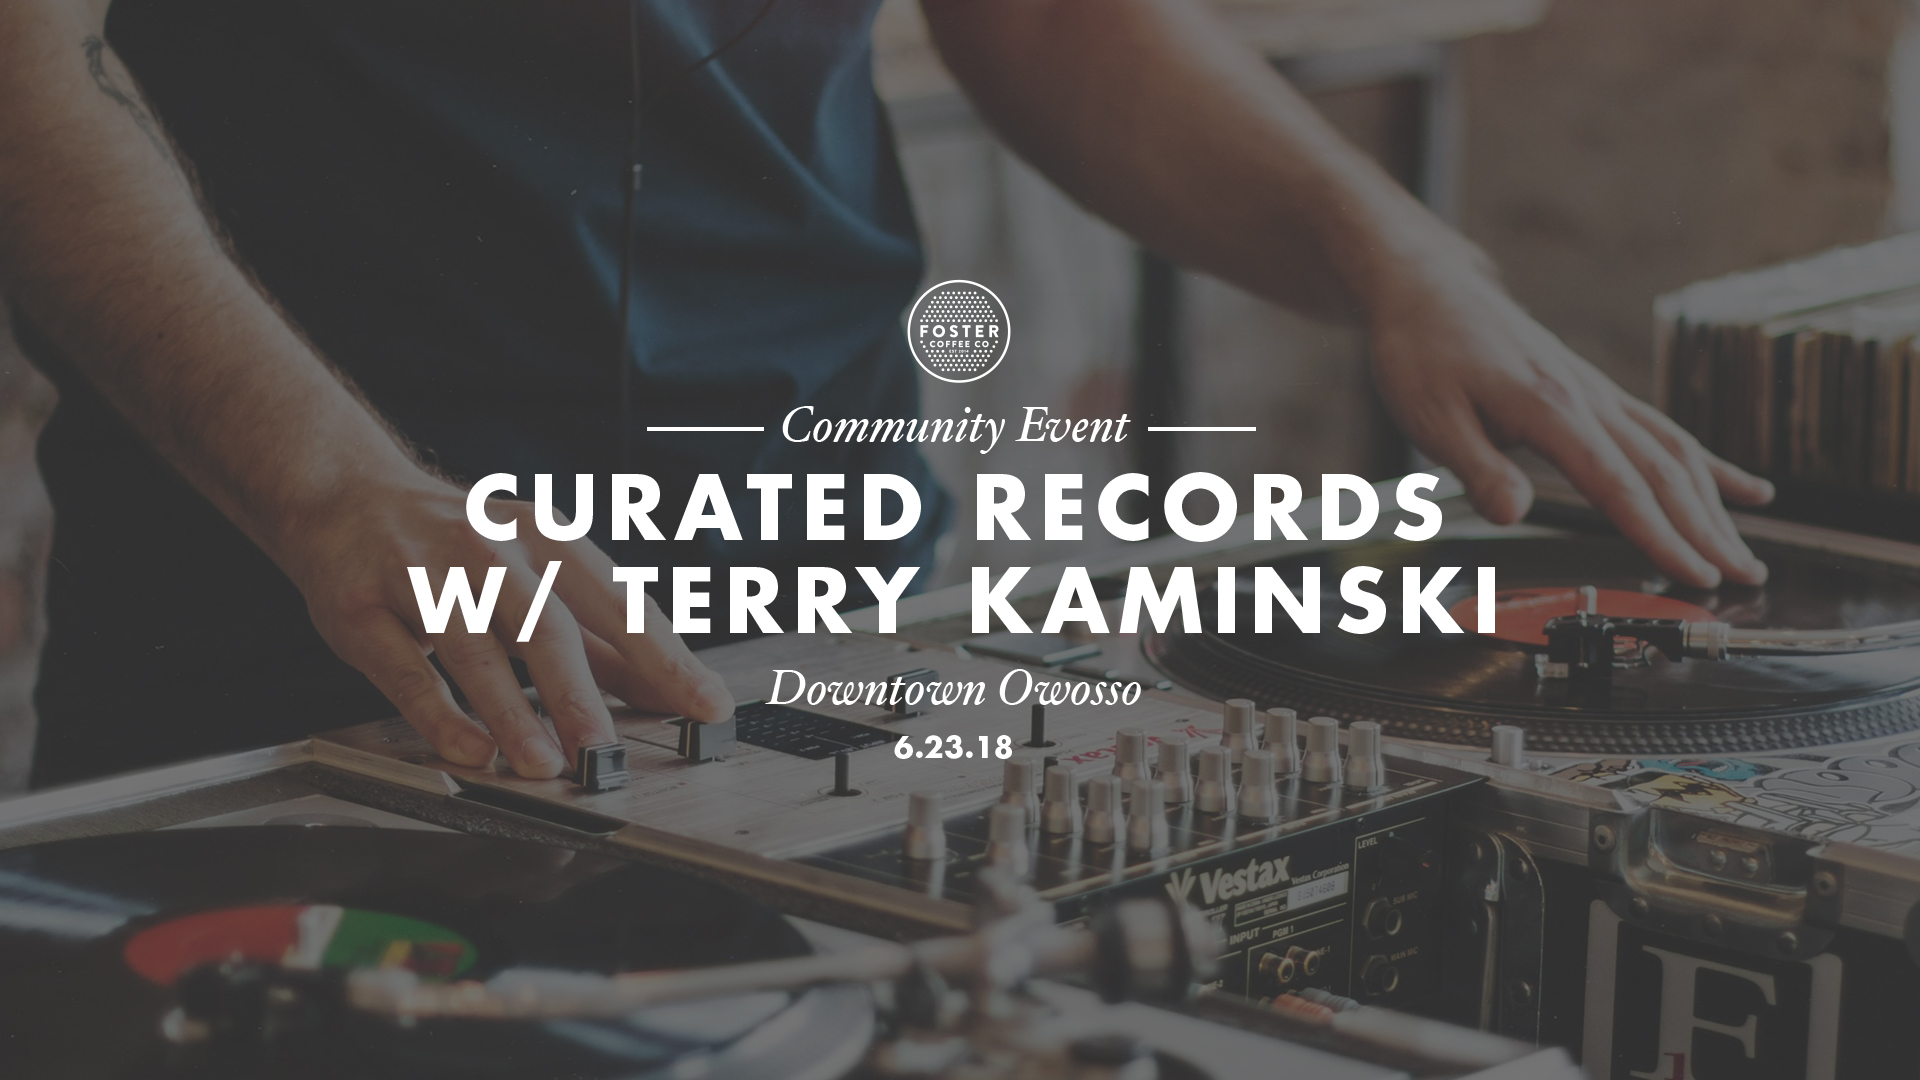 Curated_Record_6.23.18.jpg